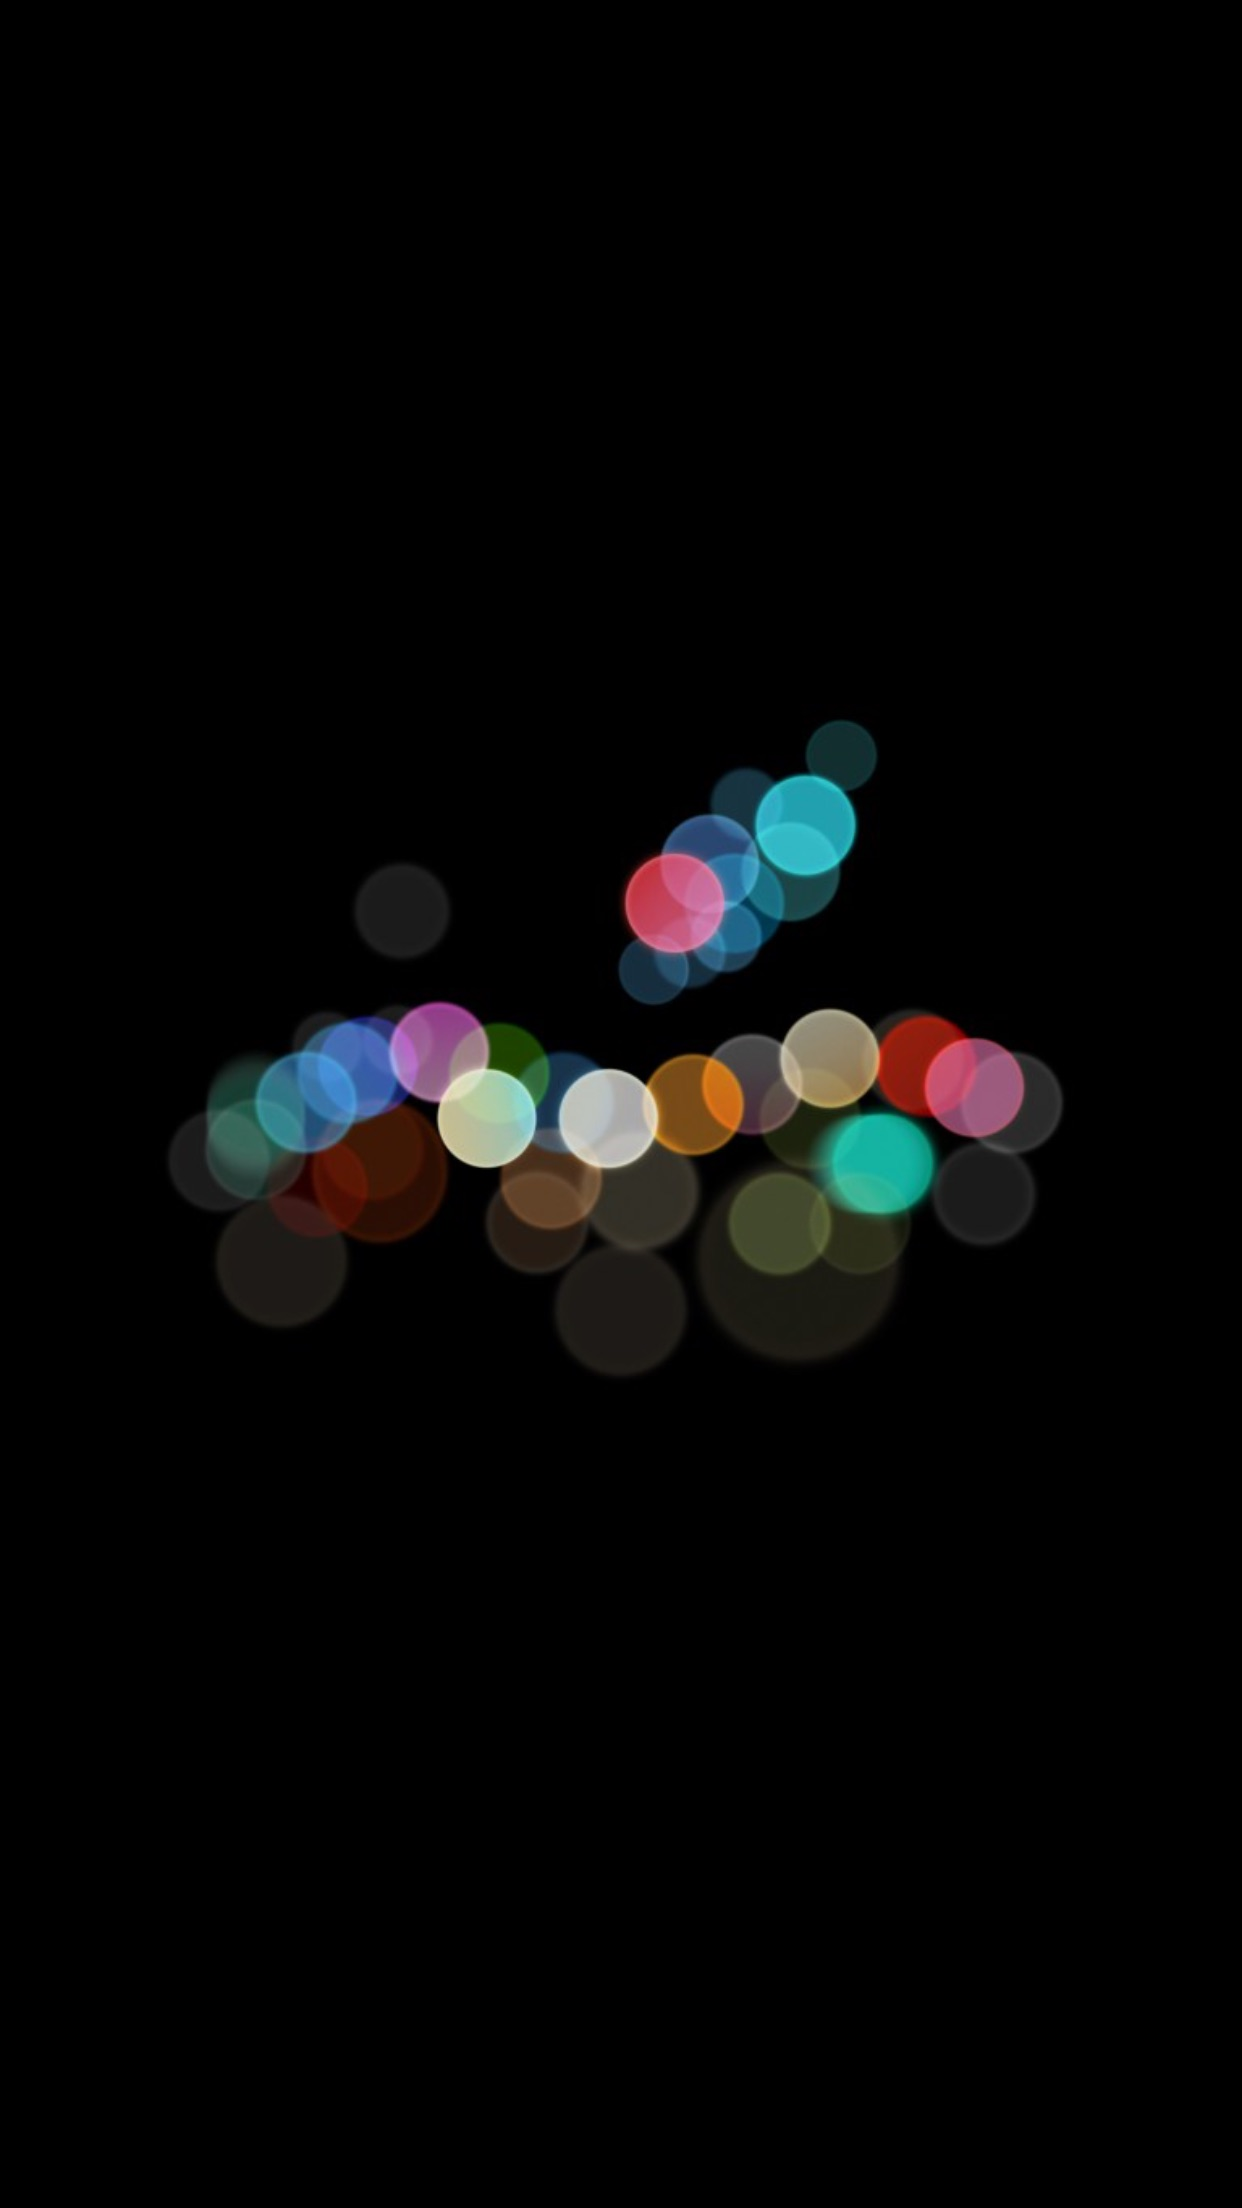 Apple-Event-7-September-wallpaper-alex-willum